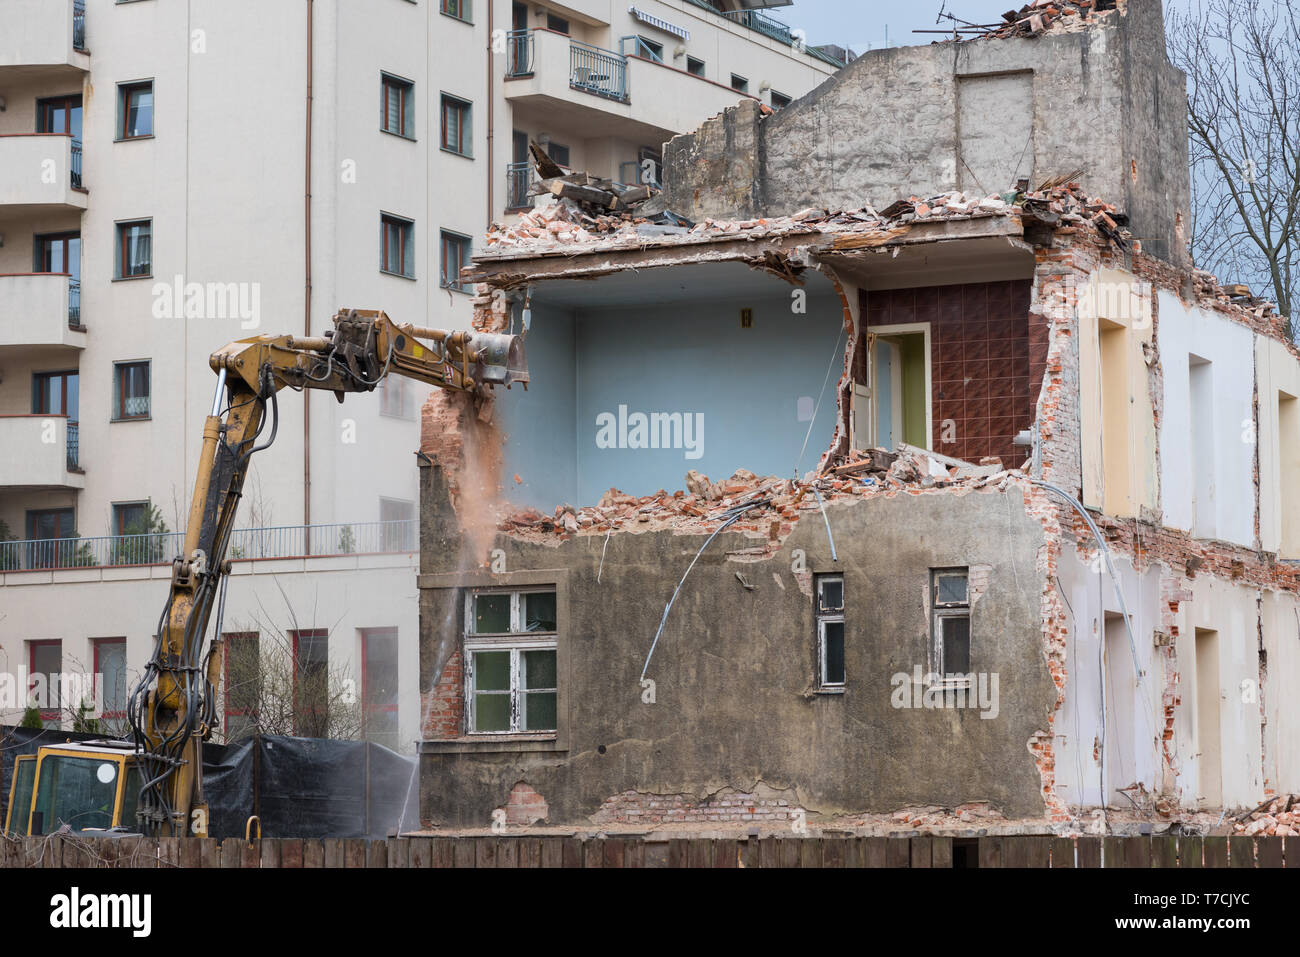 Old residential building demolition with excavator - Stock Image